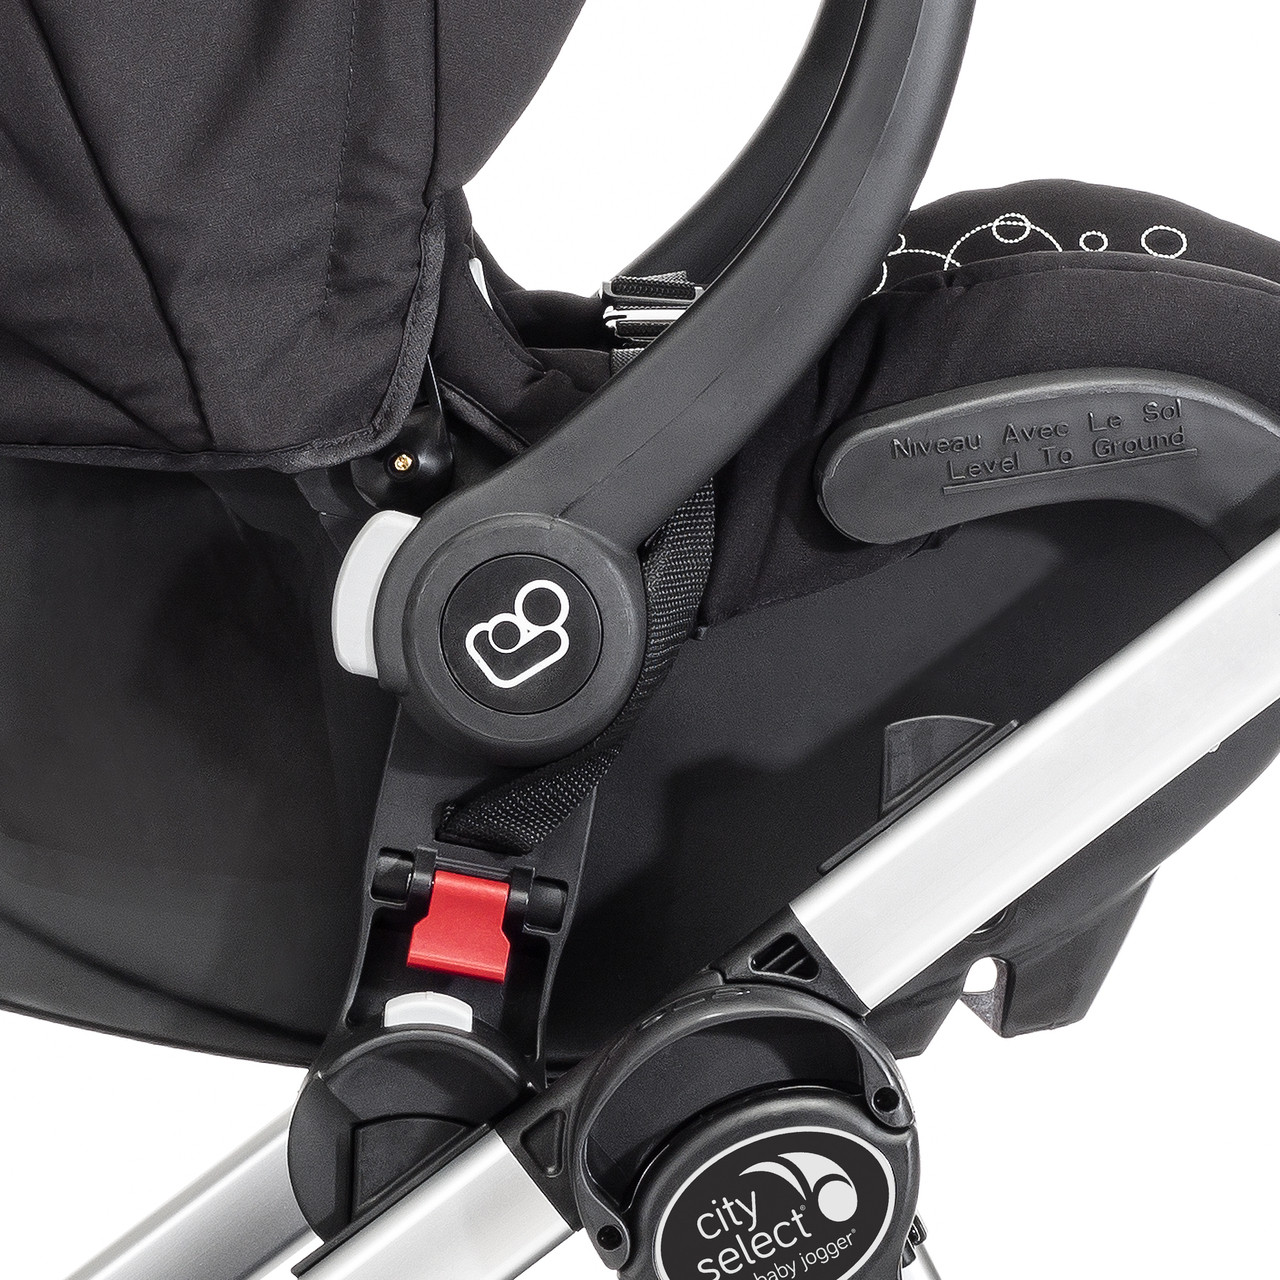 City Select Stroller Multi Model Car Seat Adapter by Baby ...